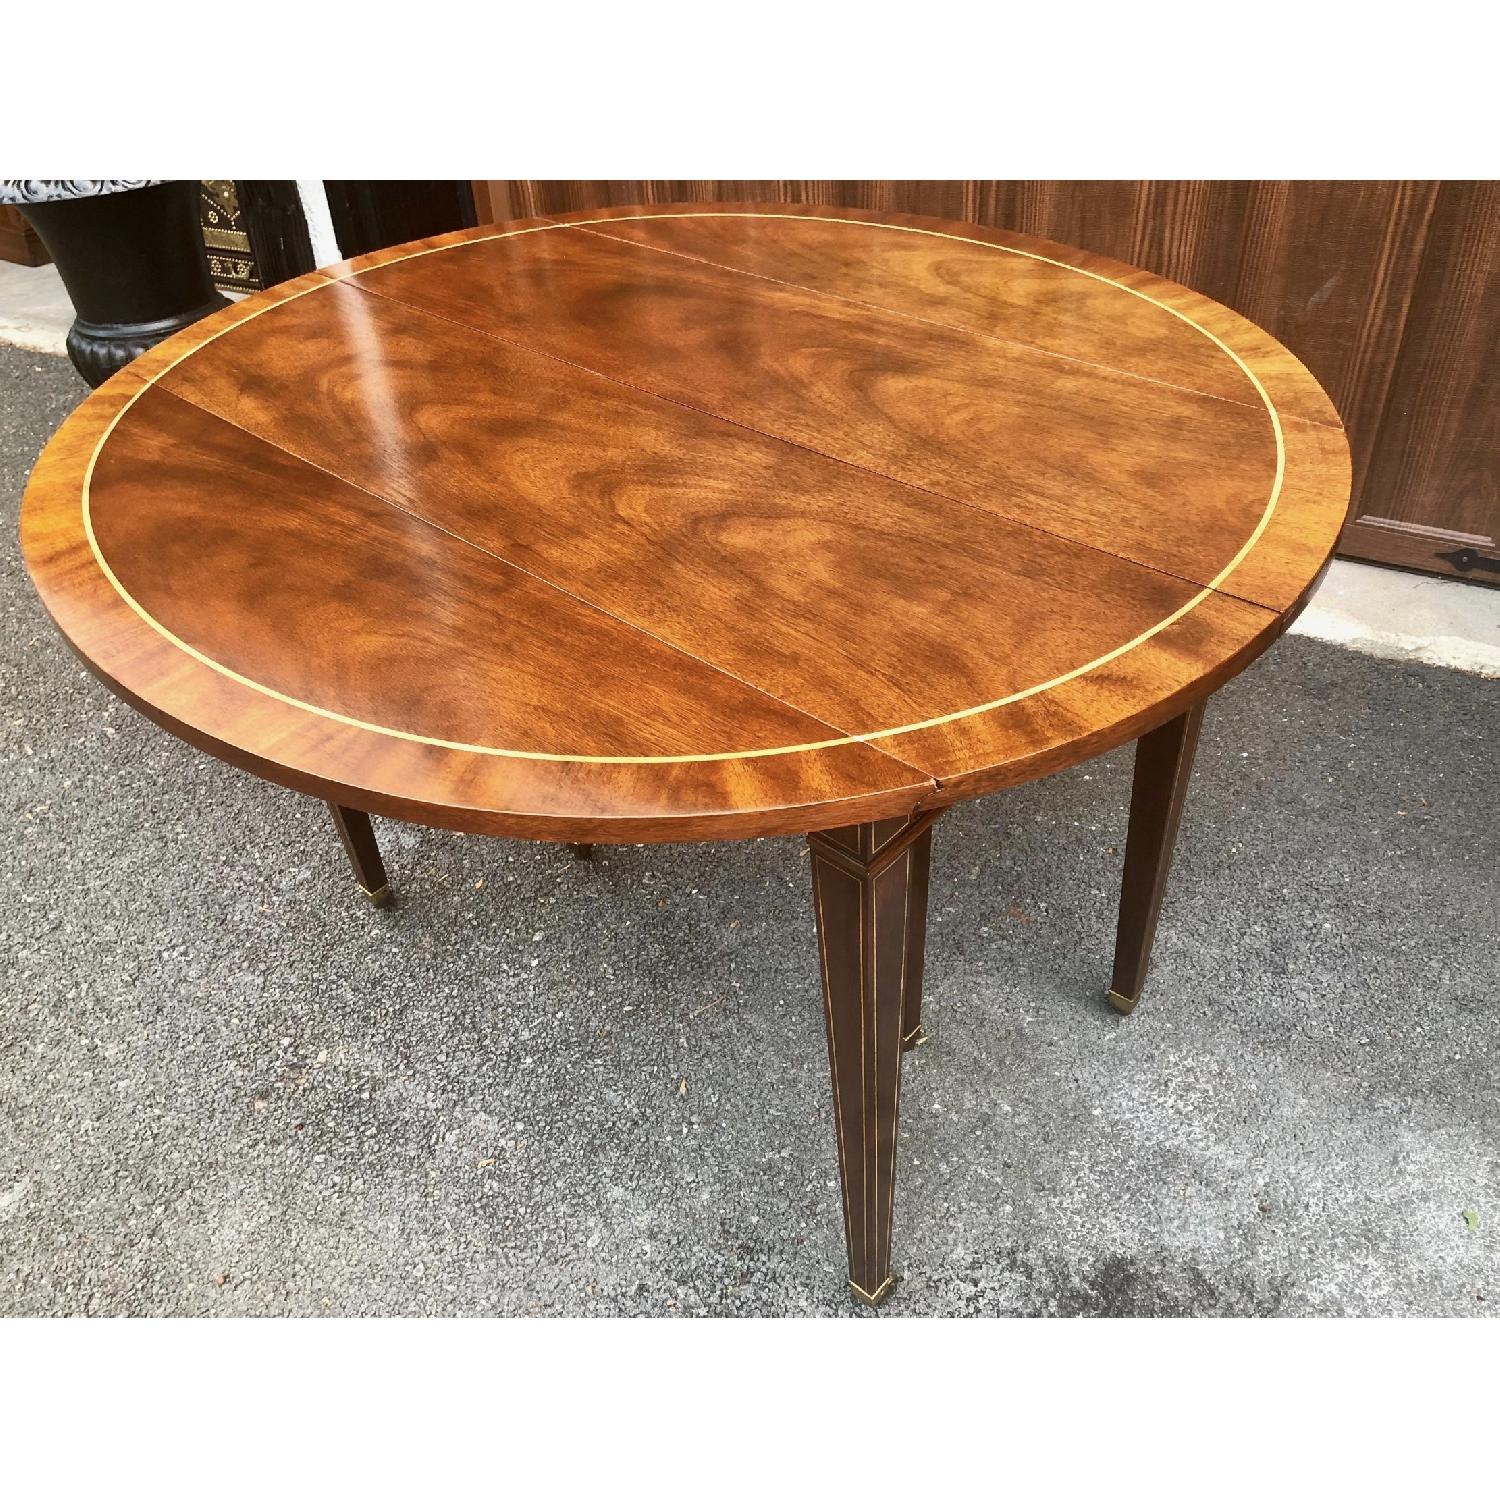 Baker Furniture Regency Style Dining Table on Casters